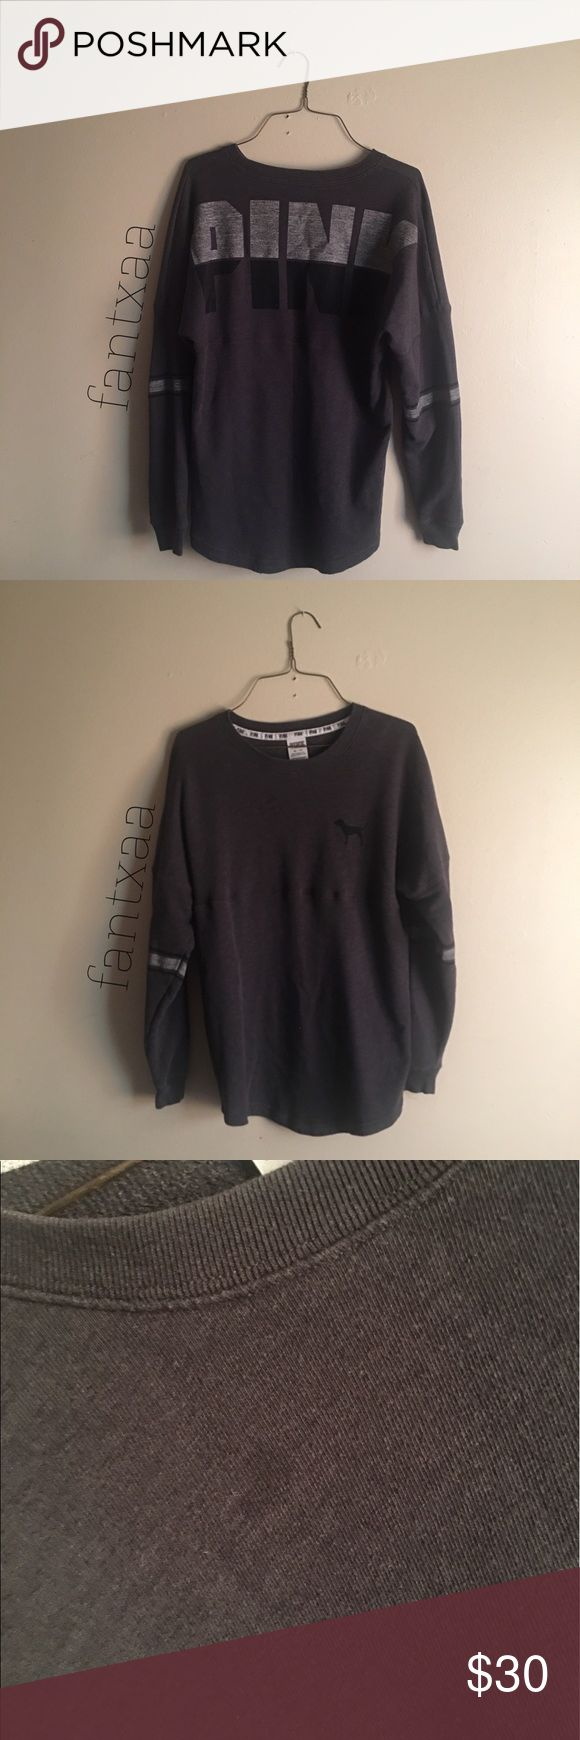 Victorias secret pink crewneck in deep grey 9/10 condition. Open to trades and offers. Tiny stain near collar. Harder to find than most, It was too small for me. PINK Victoria's Secret Sweaters Crew & Scoop Necks